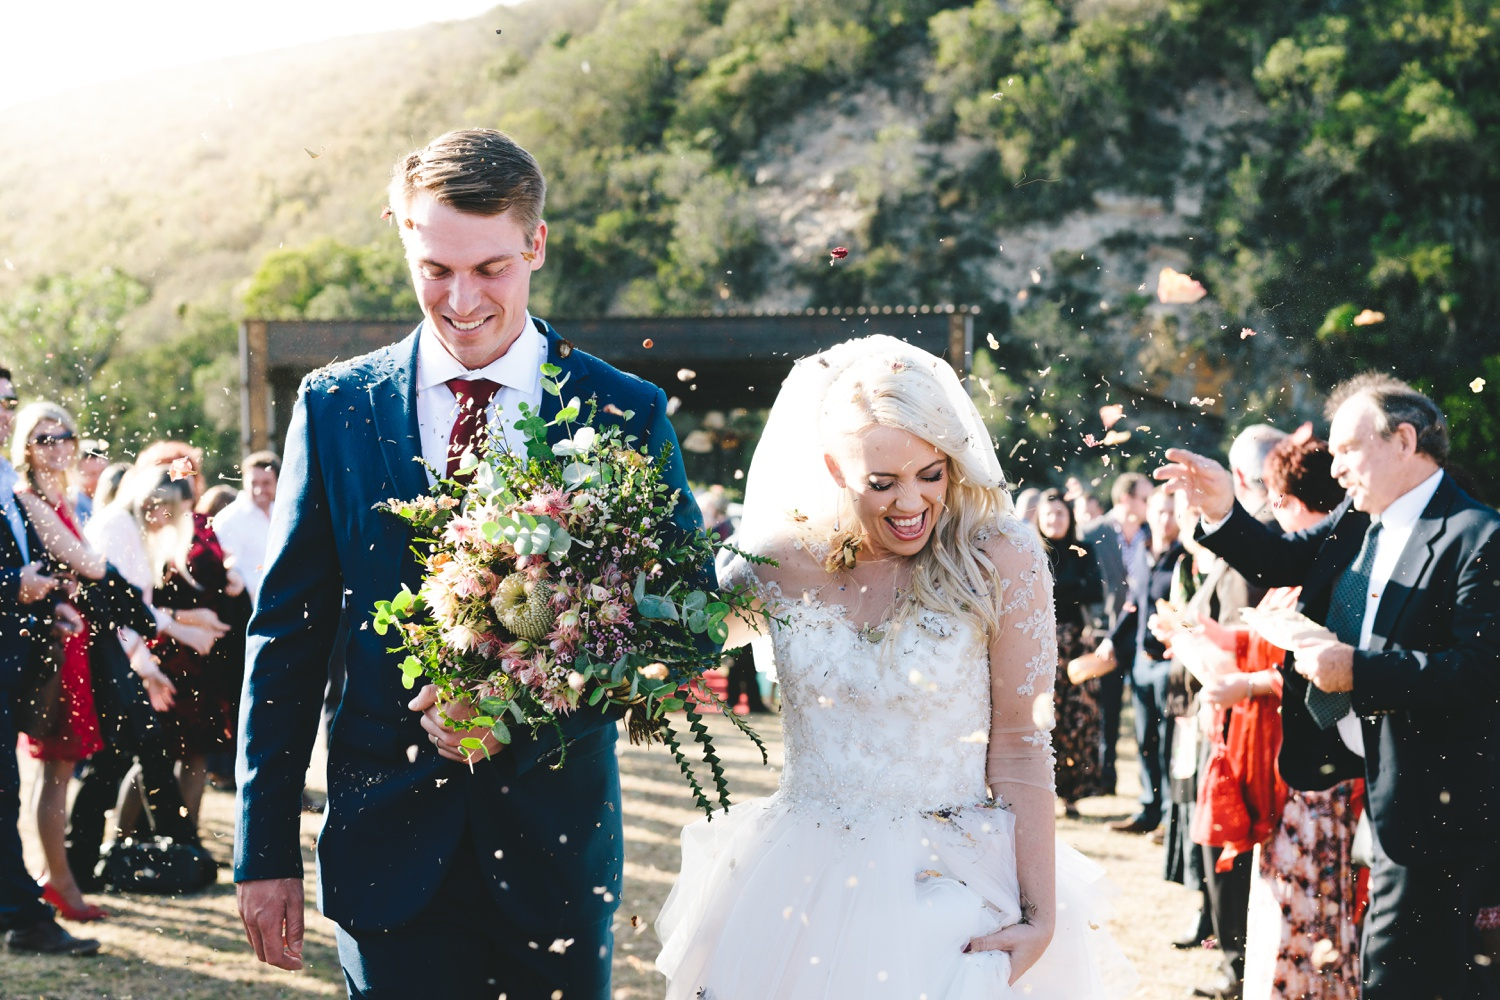 cathryn_warwick_wearecharlieray_hopewell_conservation_eastern_cape_wedding_0081.jpg